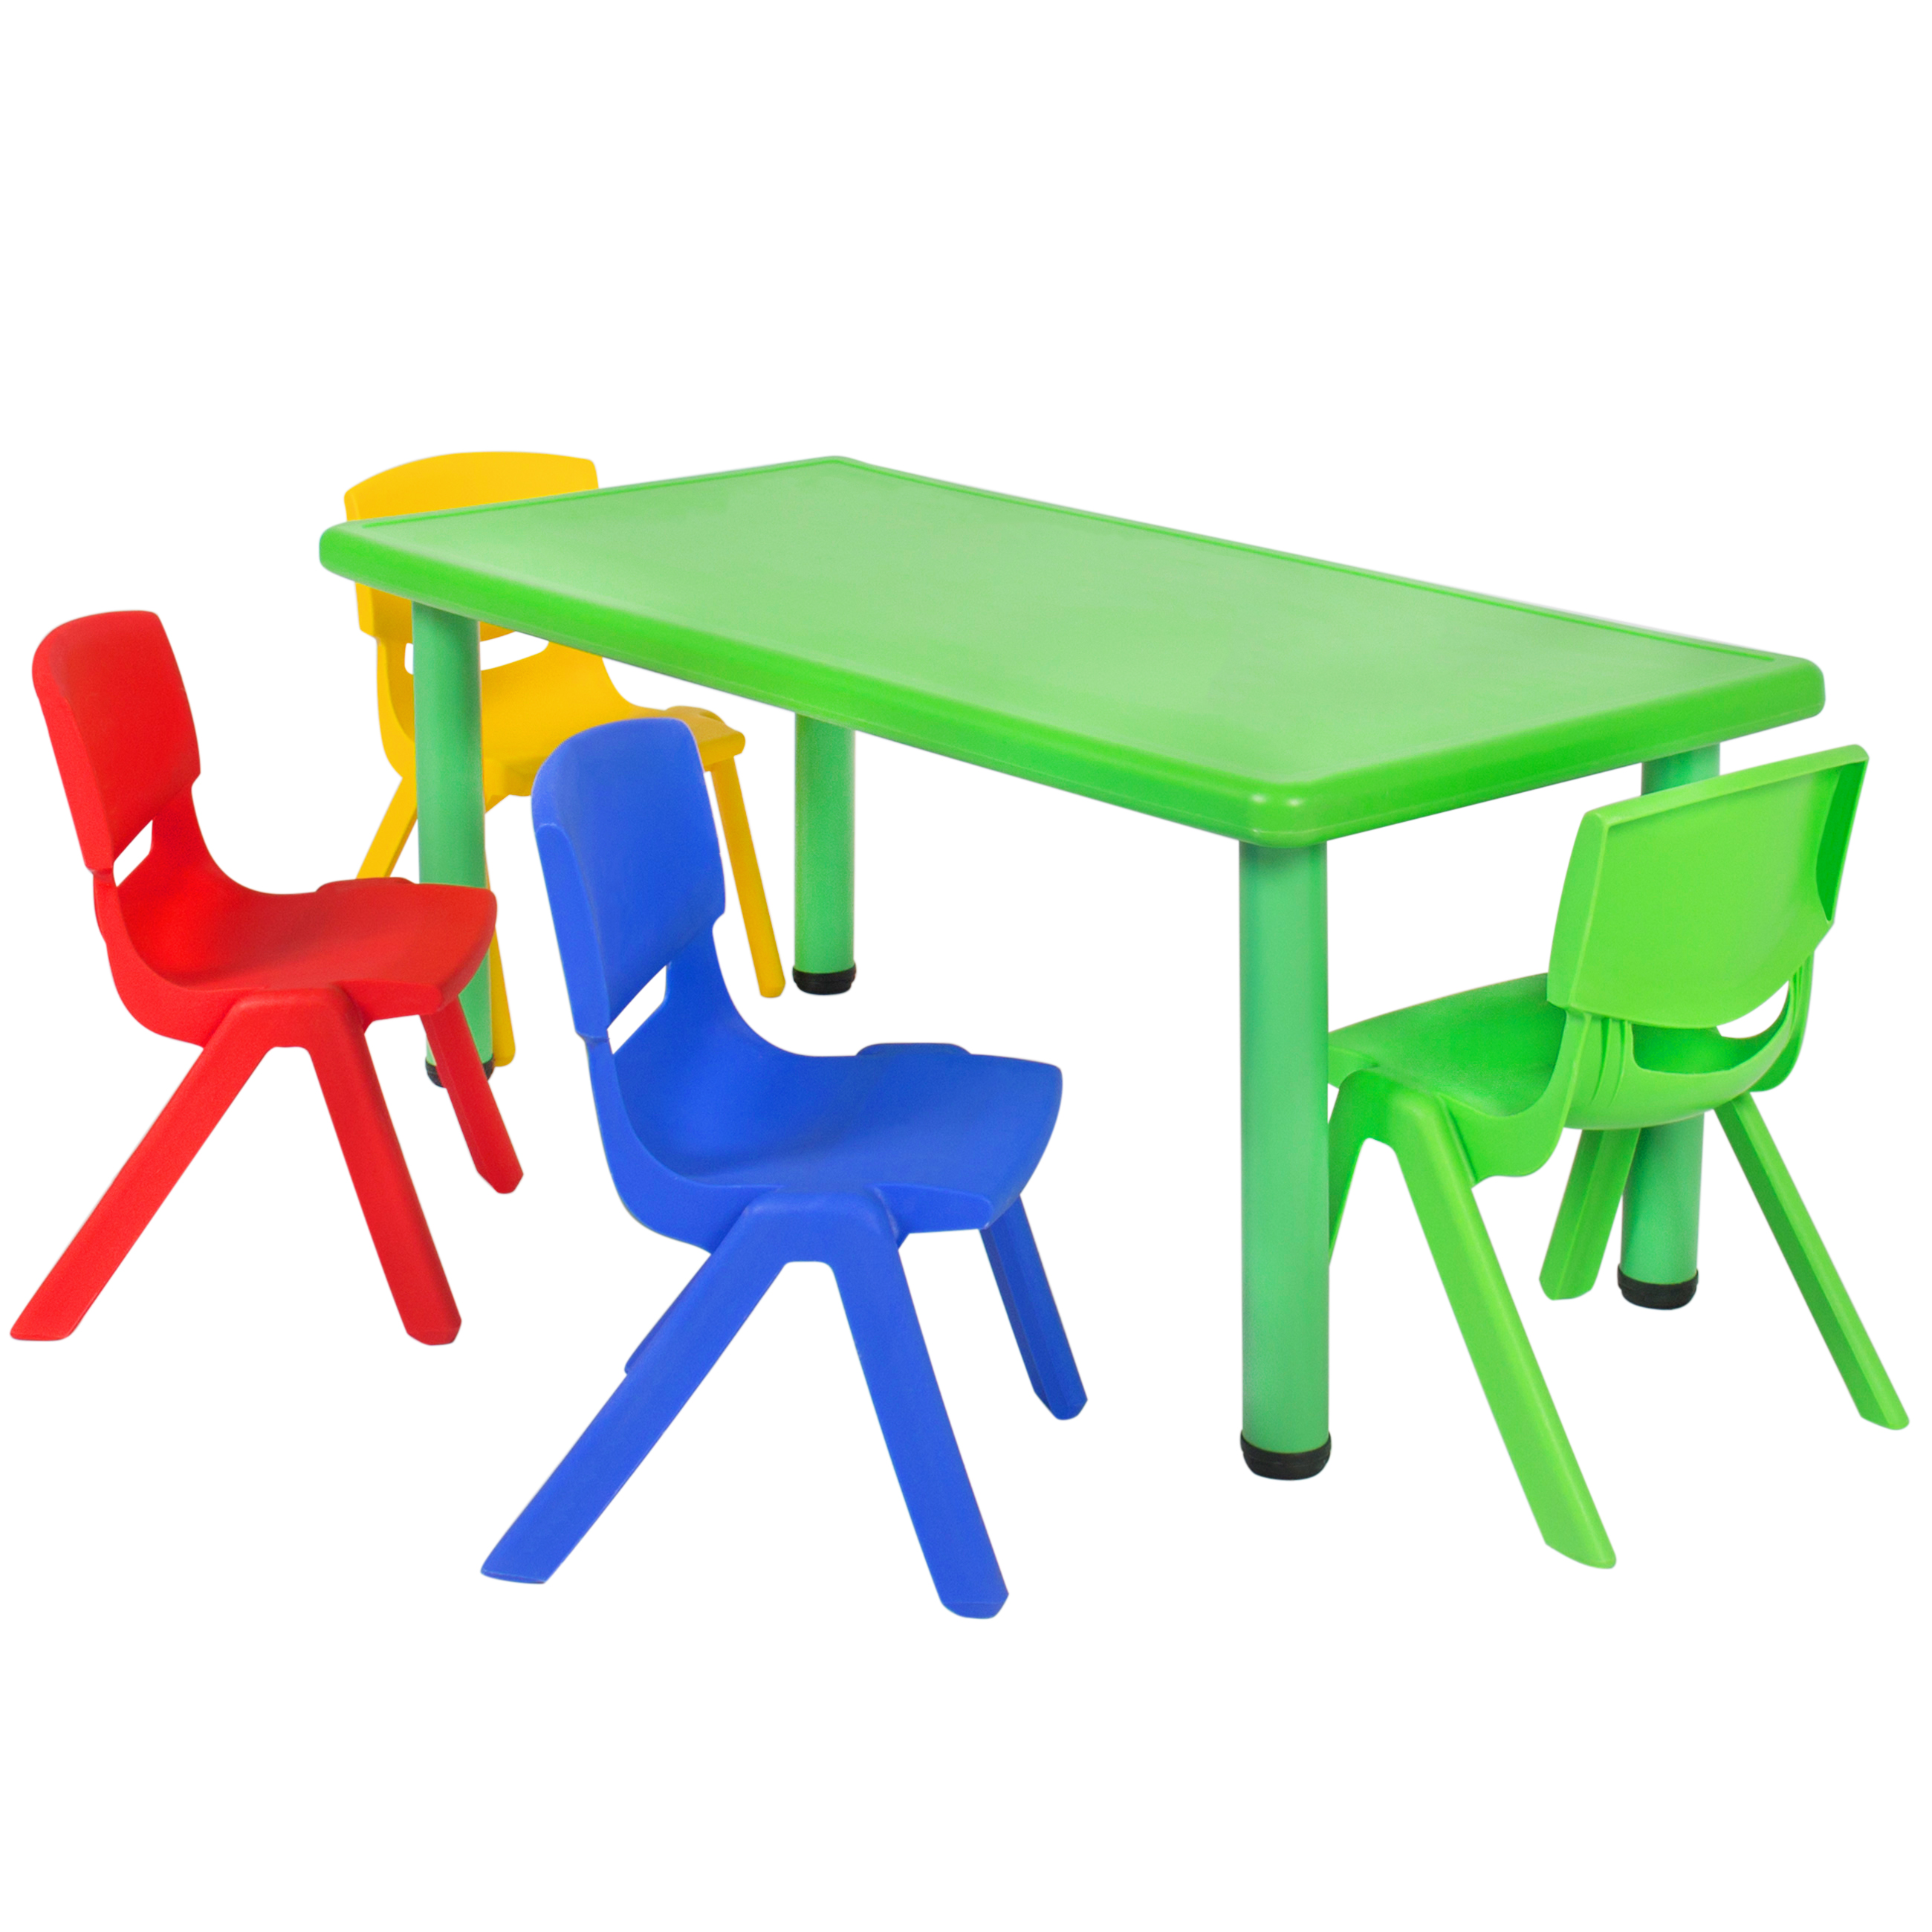 Best Choice Products Multicolored Kids Plastic Table And 4 Chairs Set Colorful Furniture Play Fun School  sc 1 st  Walmart.com & Kids\u0027 Table \u0026 Chair Sets - Walmart.com